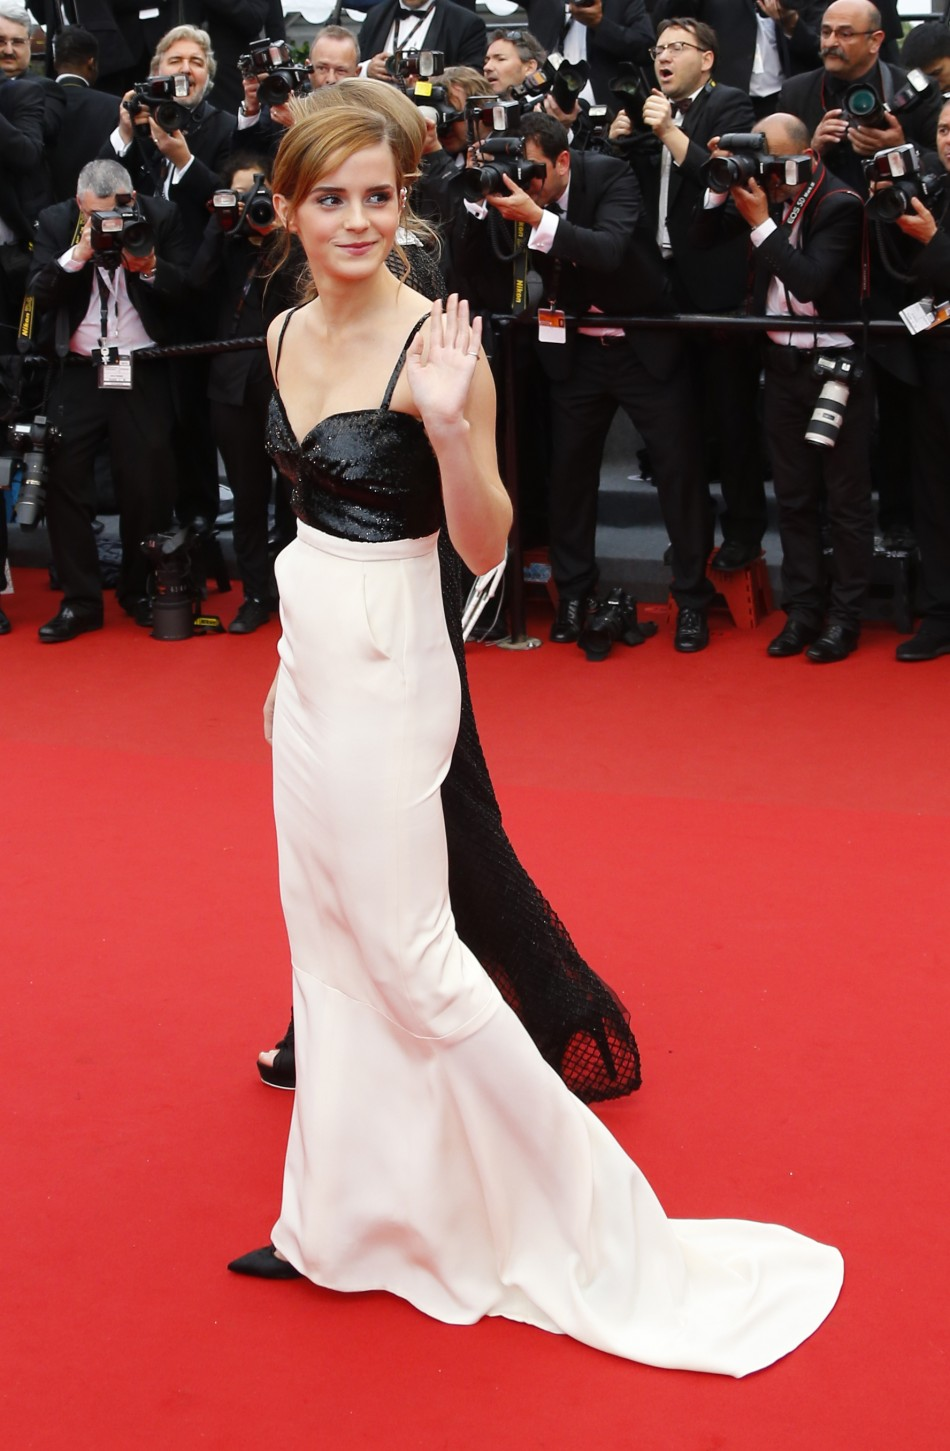 370788-actress-emma-watson-poses-on-the-red-carpet-as-she-arrives-for-the-scr.jpg